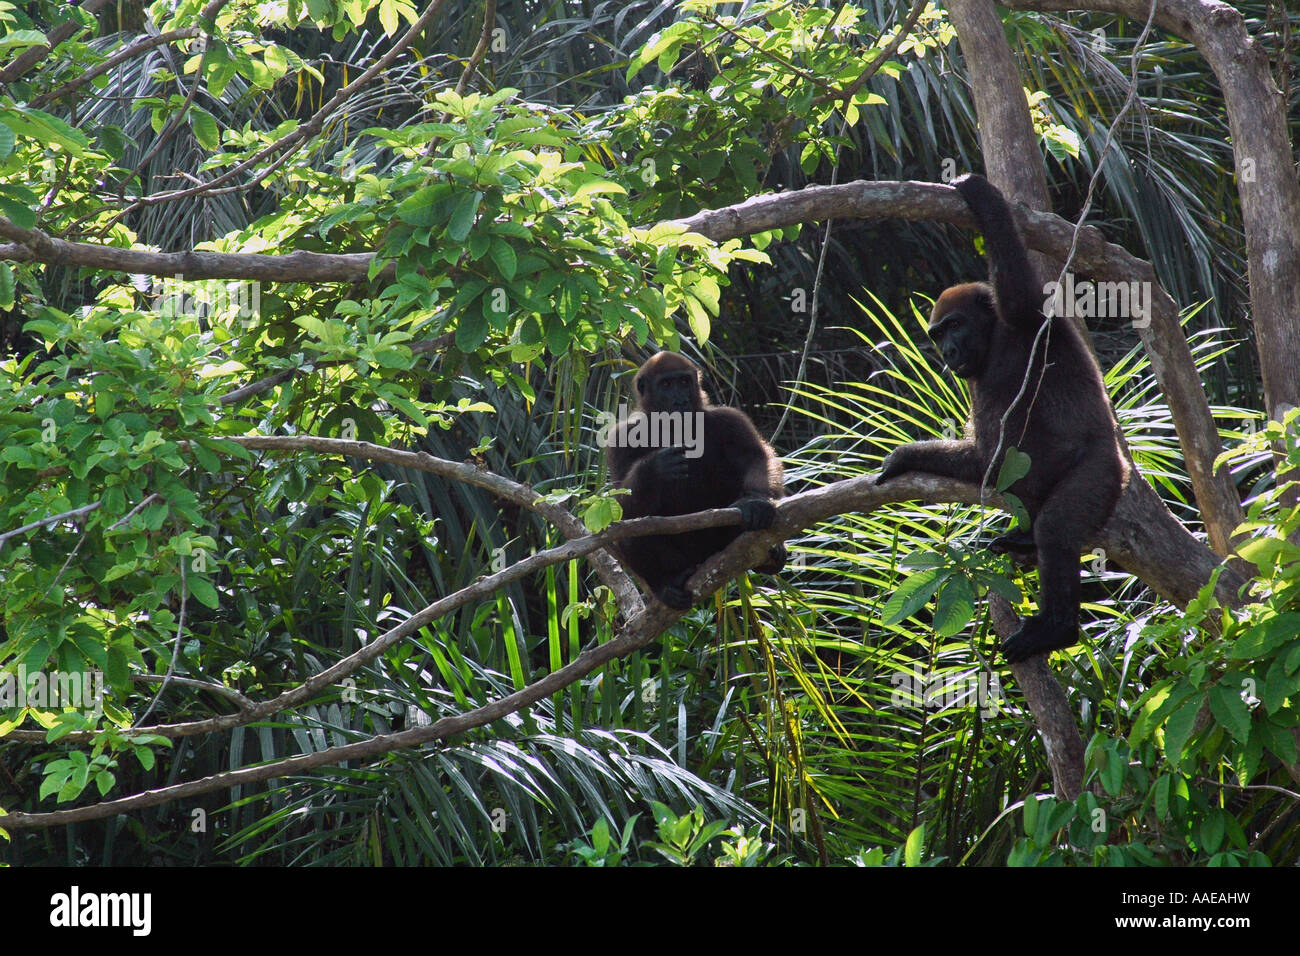 Two young western lowland gorillas in a tree on Evengue island in Gabon's Loango National Park rehabilitation - Stock Image